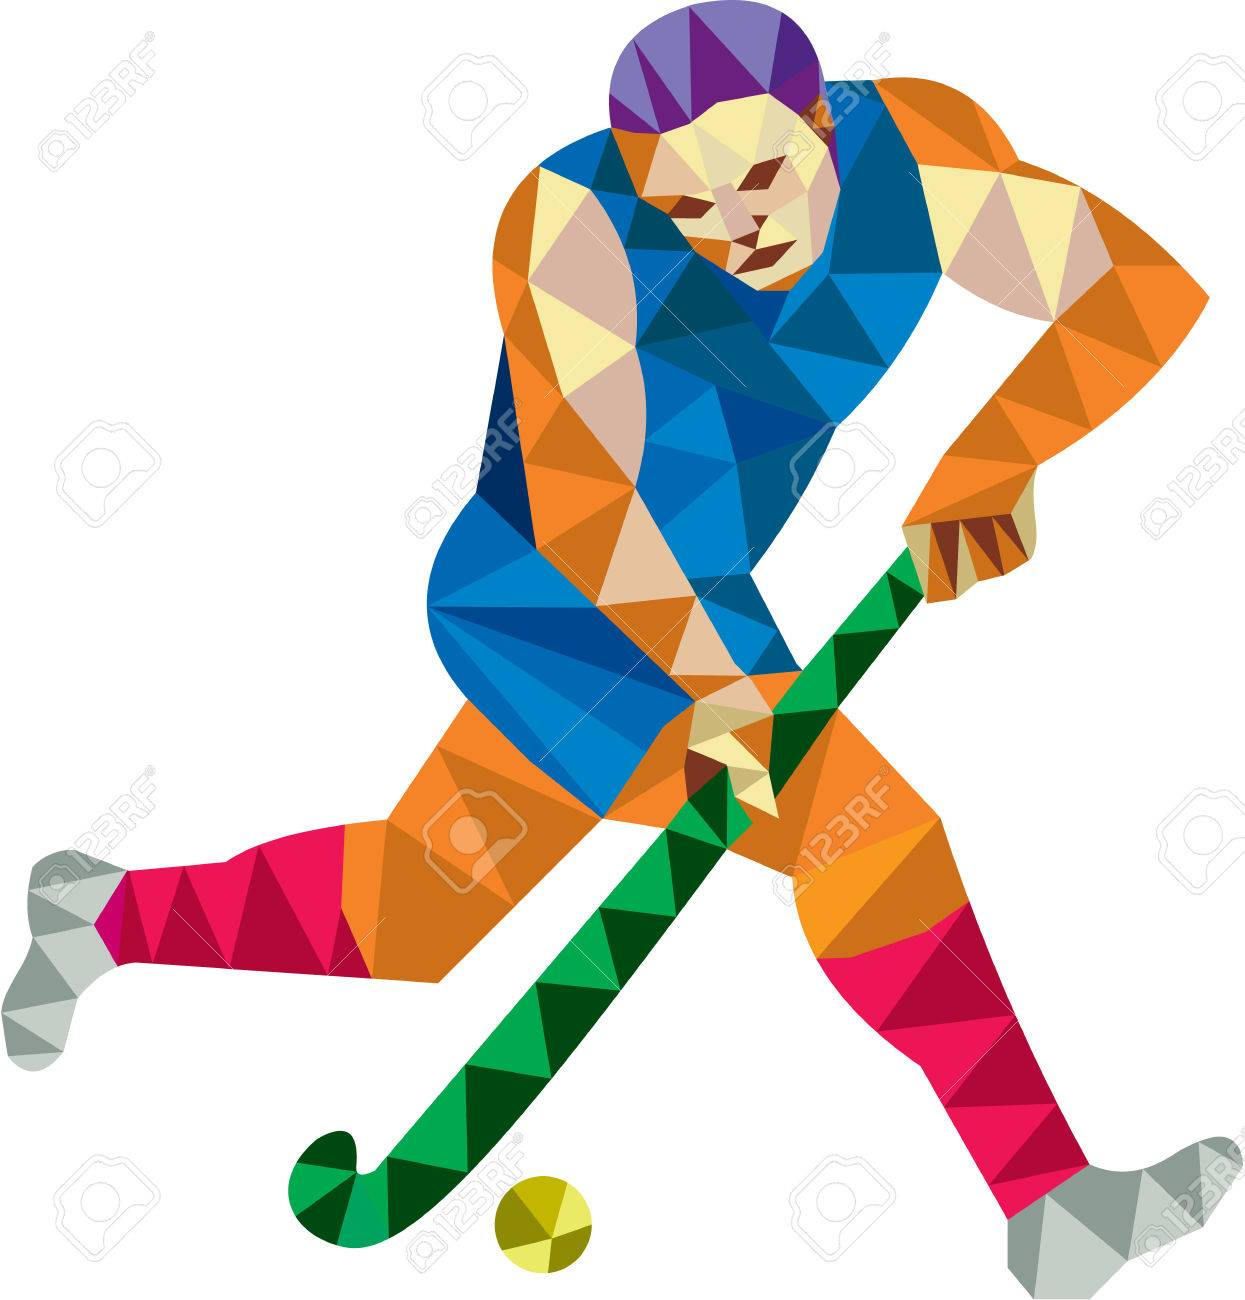 Image result for free picture of hockey stick and ball